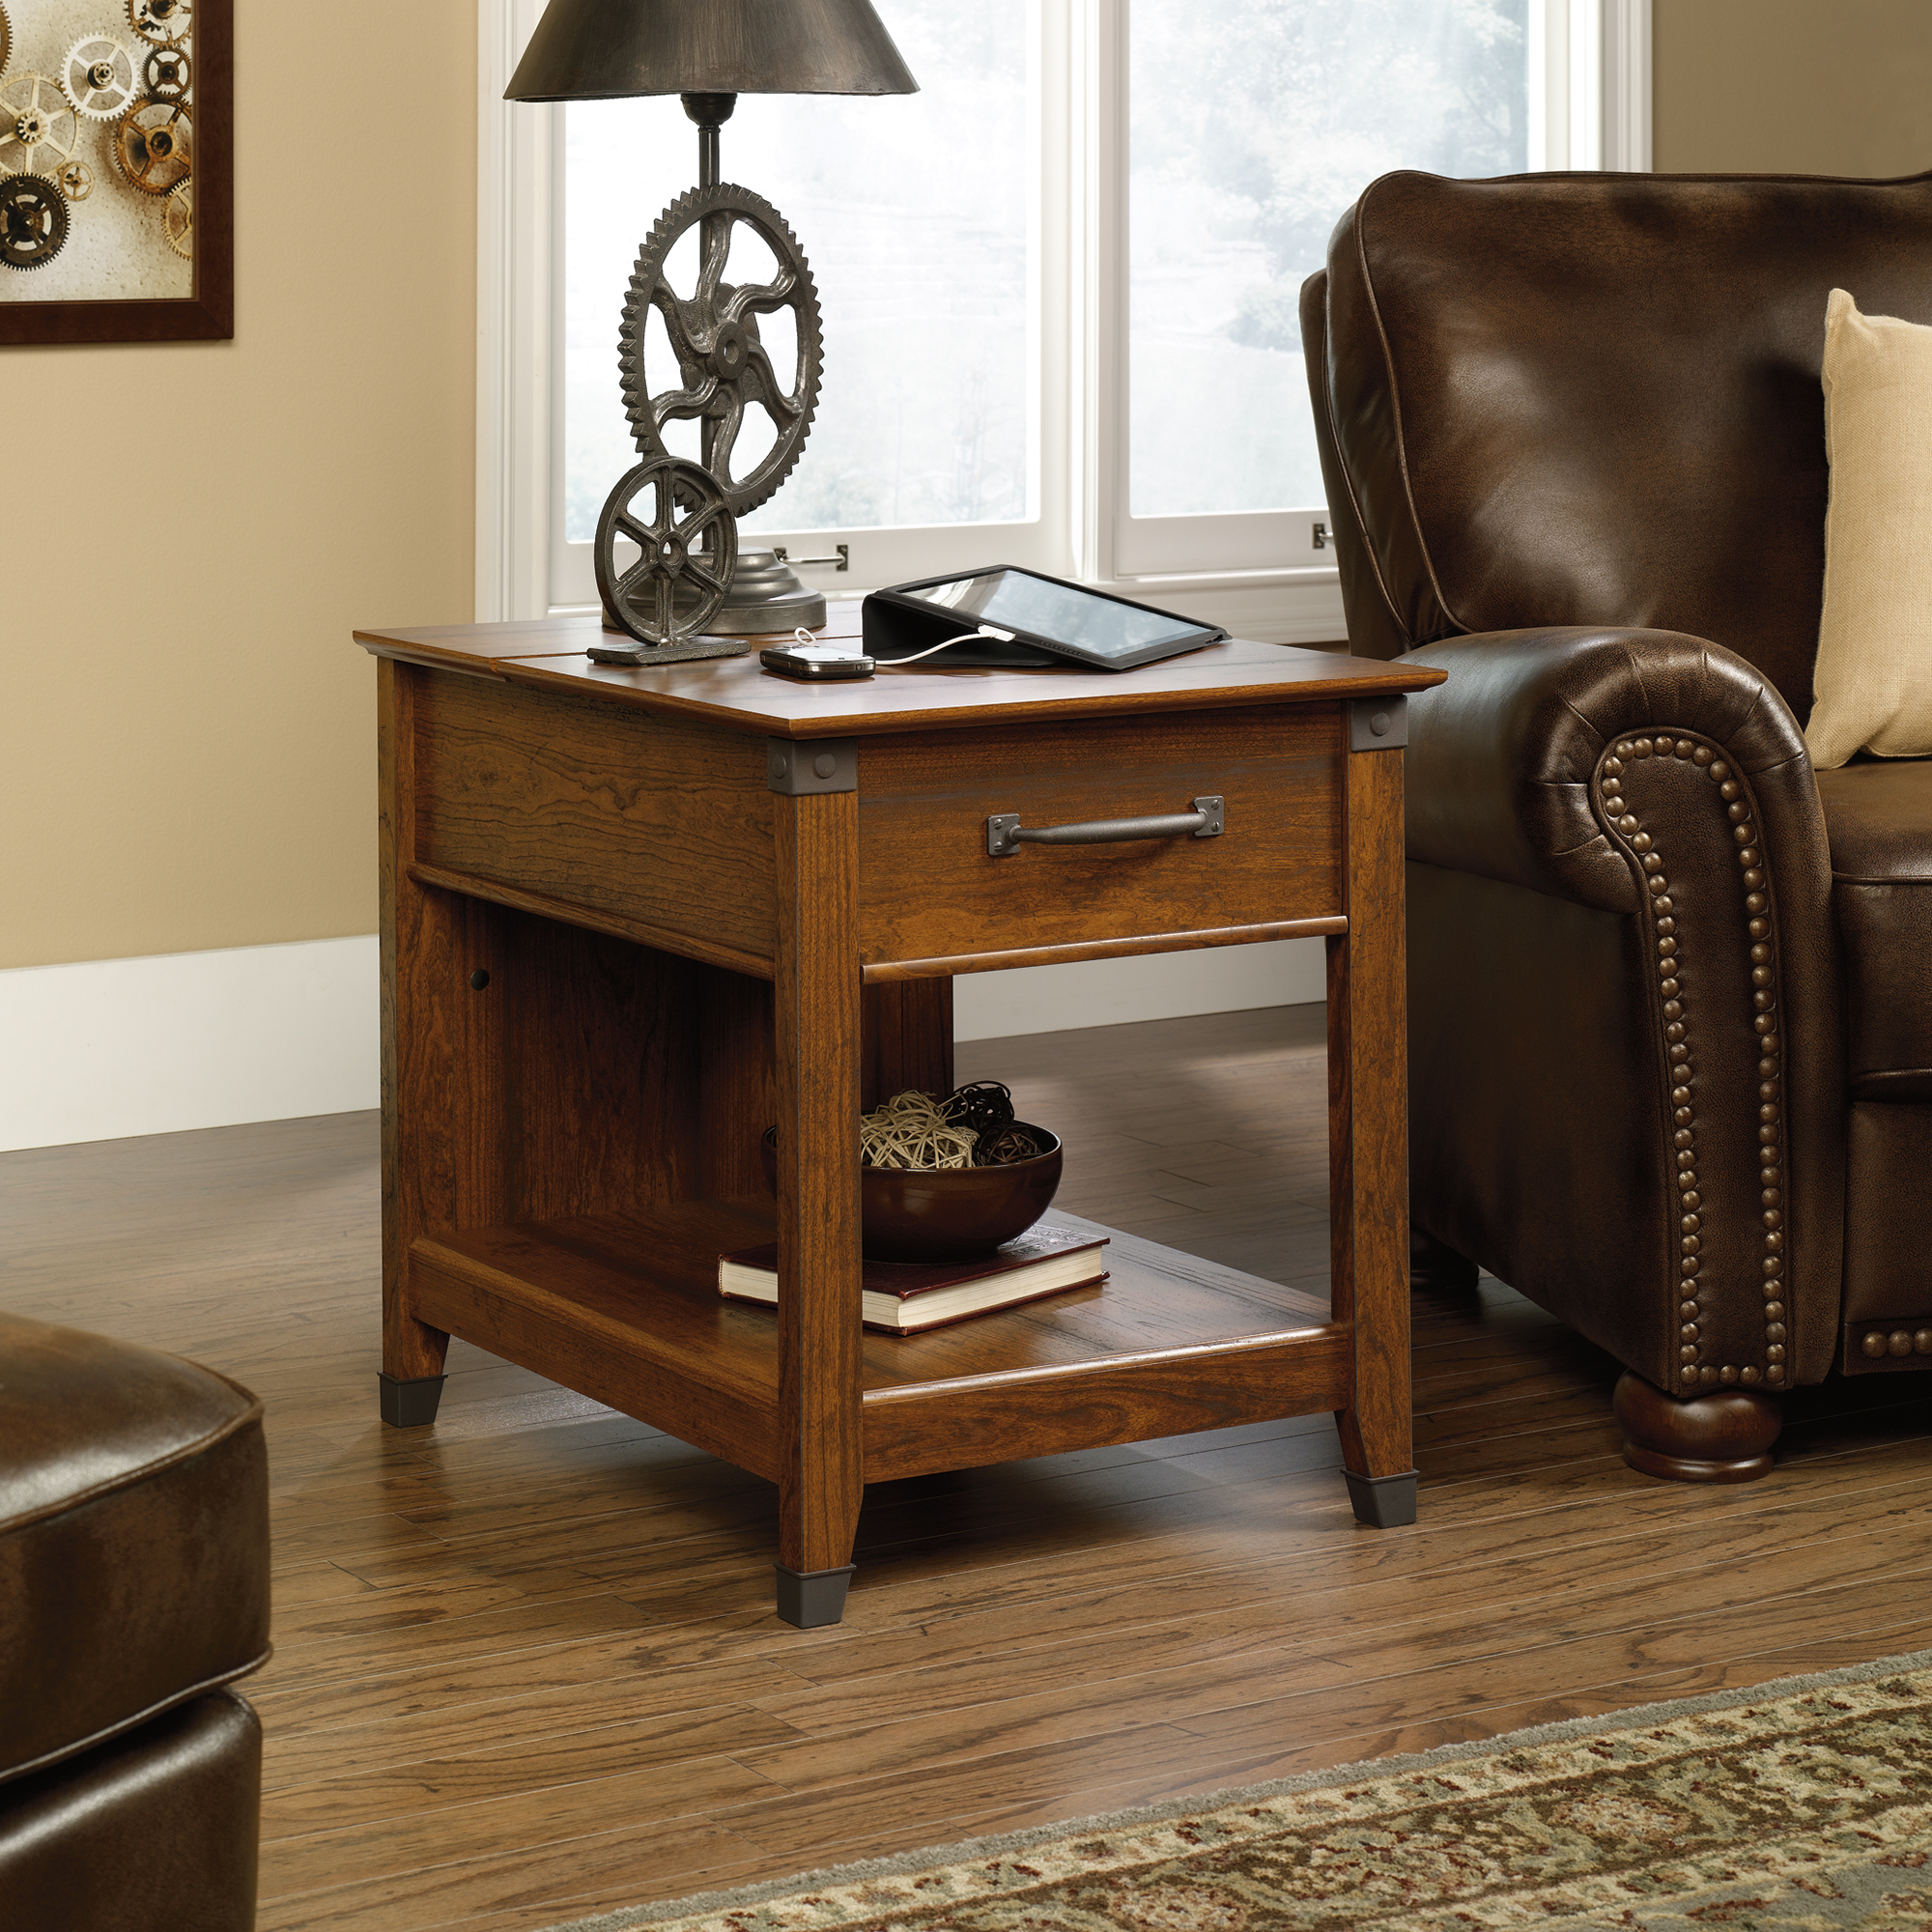 sauder eden rue accent table the furniture end with built charging station carson forge side ethan allen upholstered chairs silver chest drawers coffee cup holders ikea frame